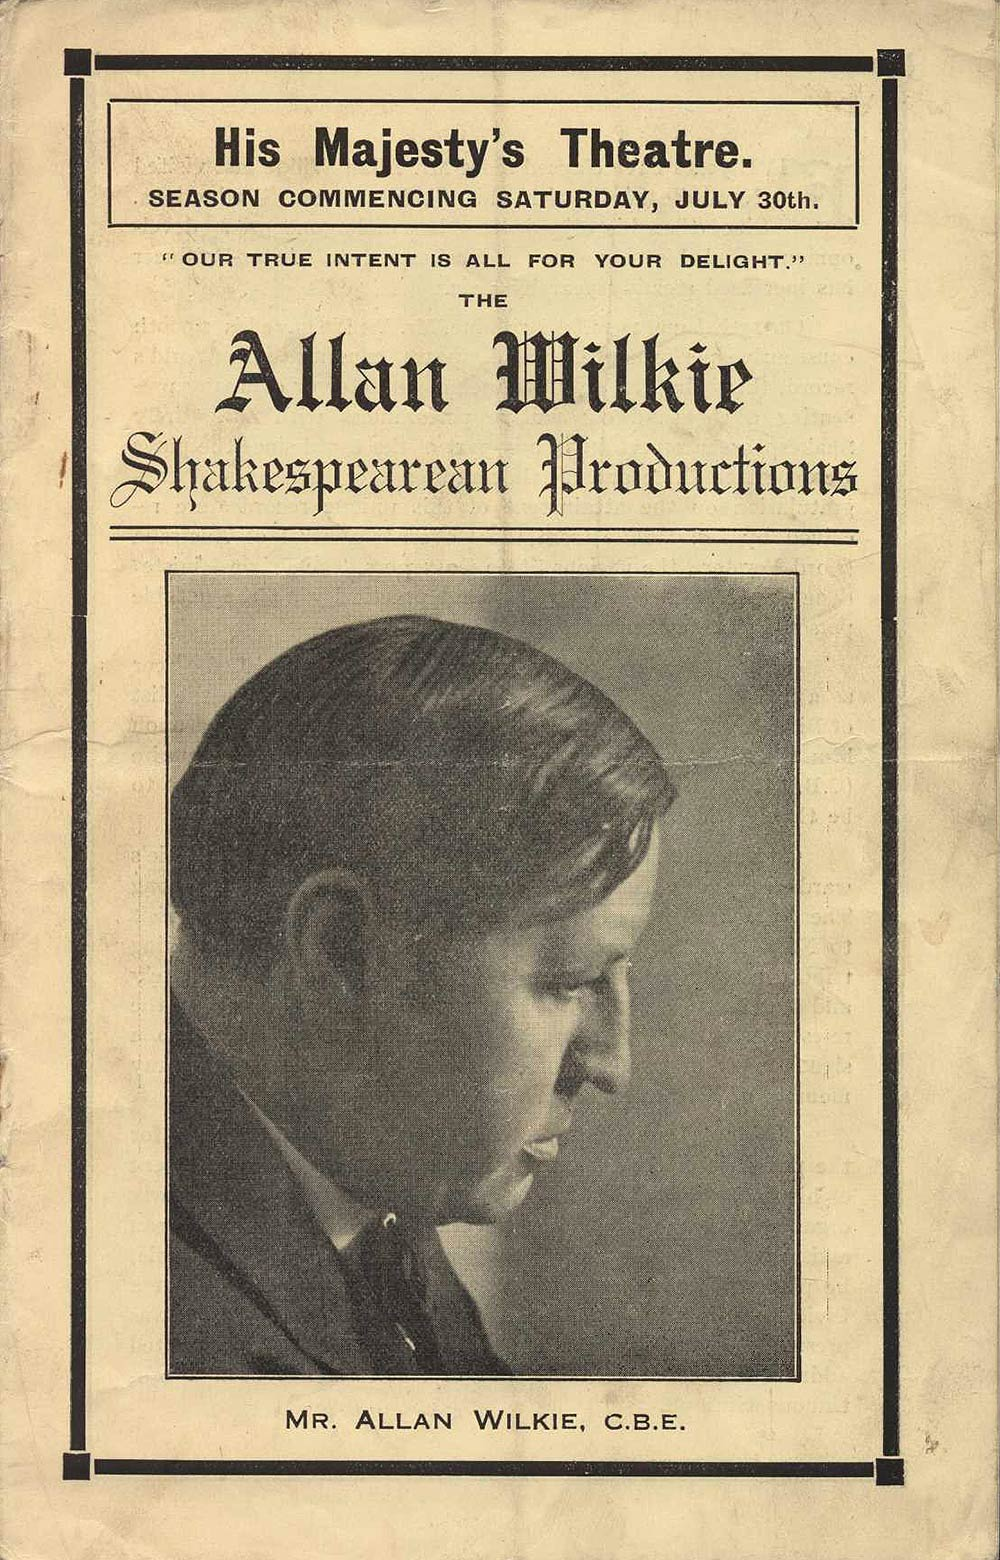 <em>The Allan Wilkie Shakespearean productions</em>. His Majesty's Theatre, Dunedin, July 30, 1927.